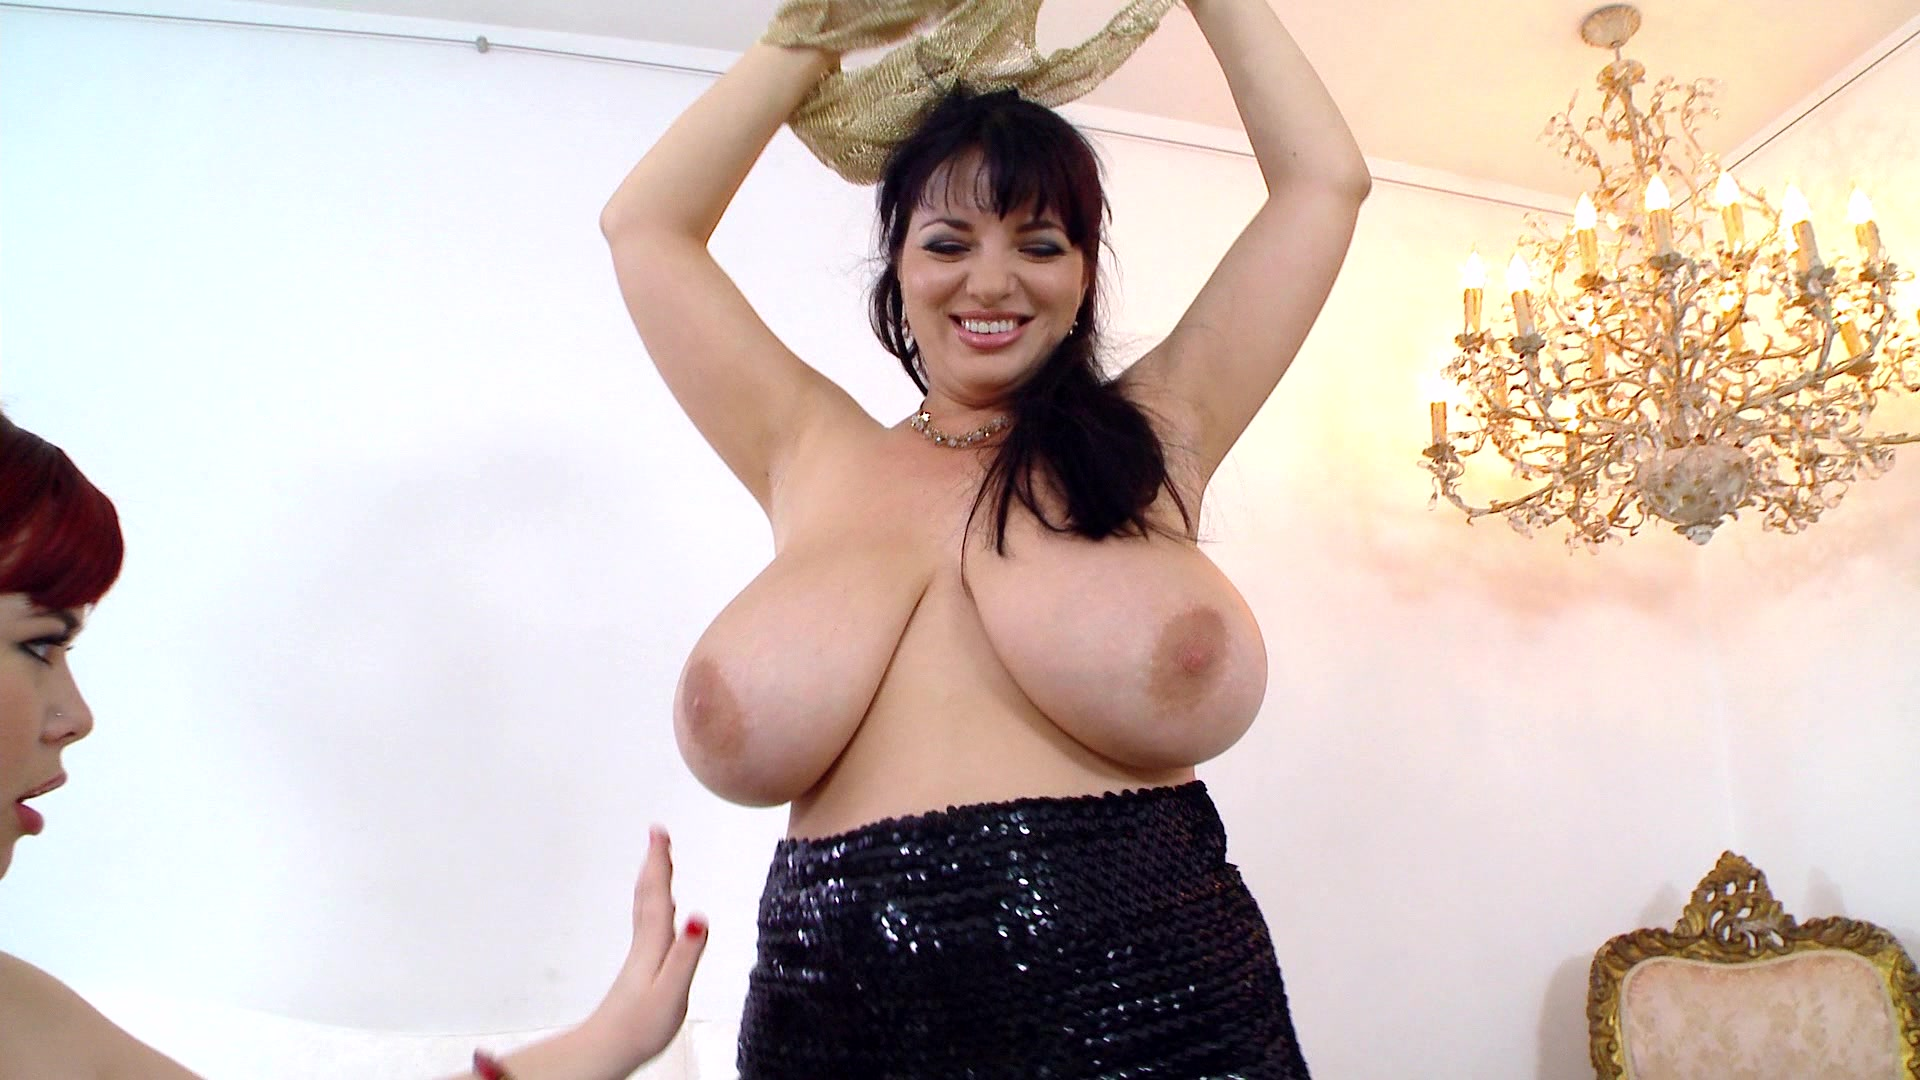 Free streaming porn busty pics and picture hut xxx